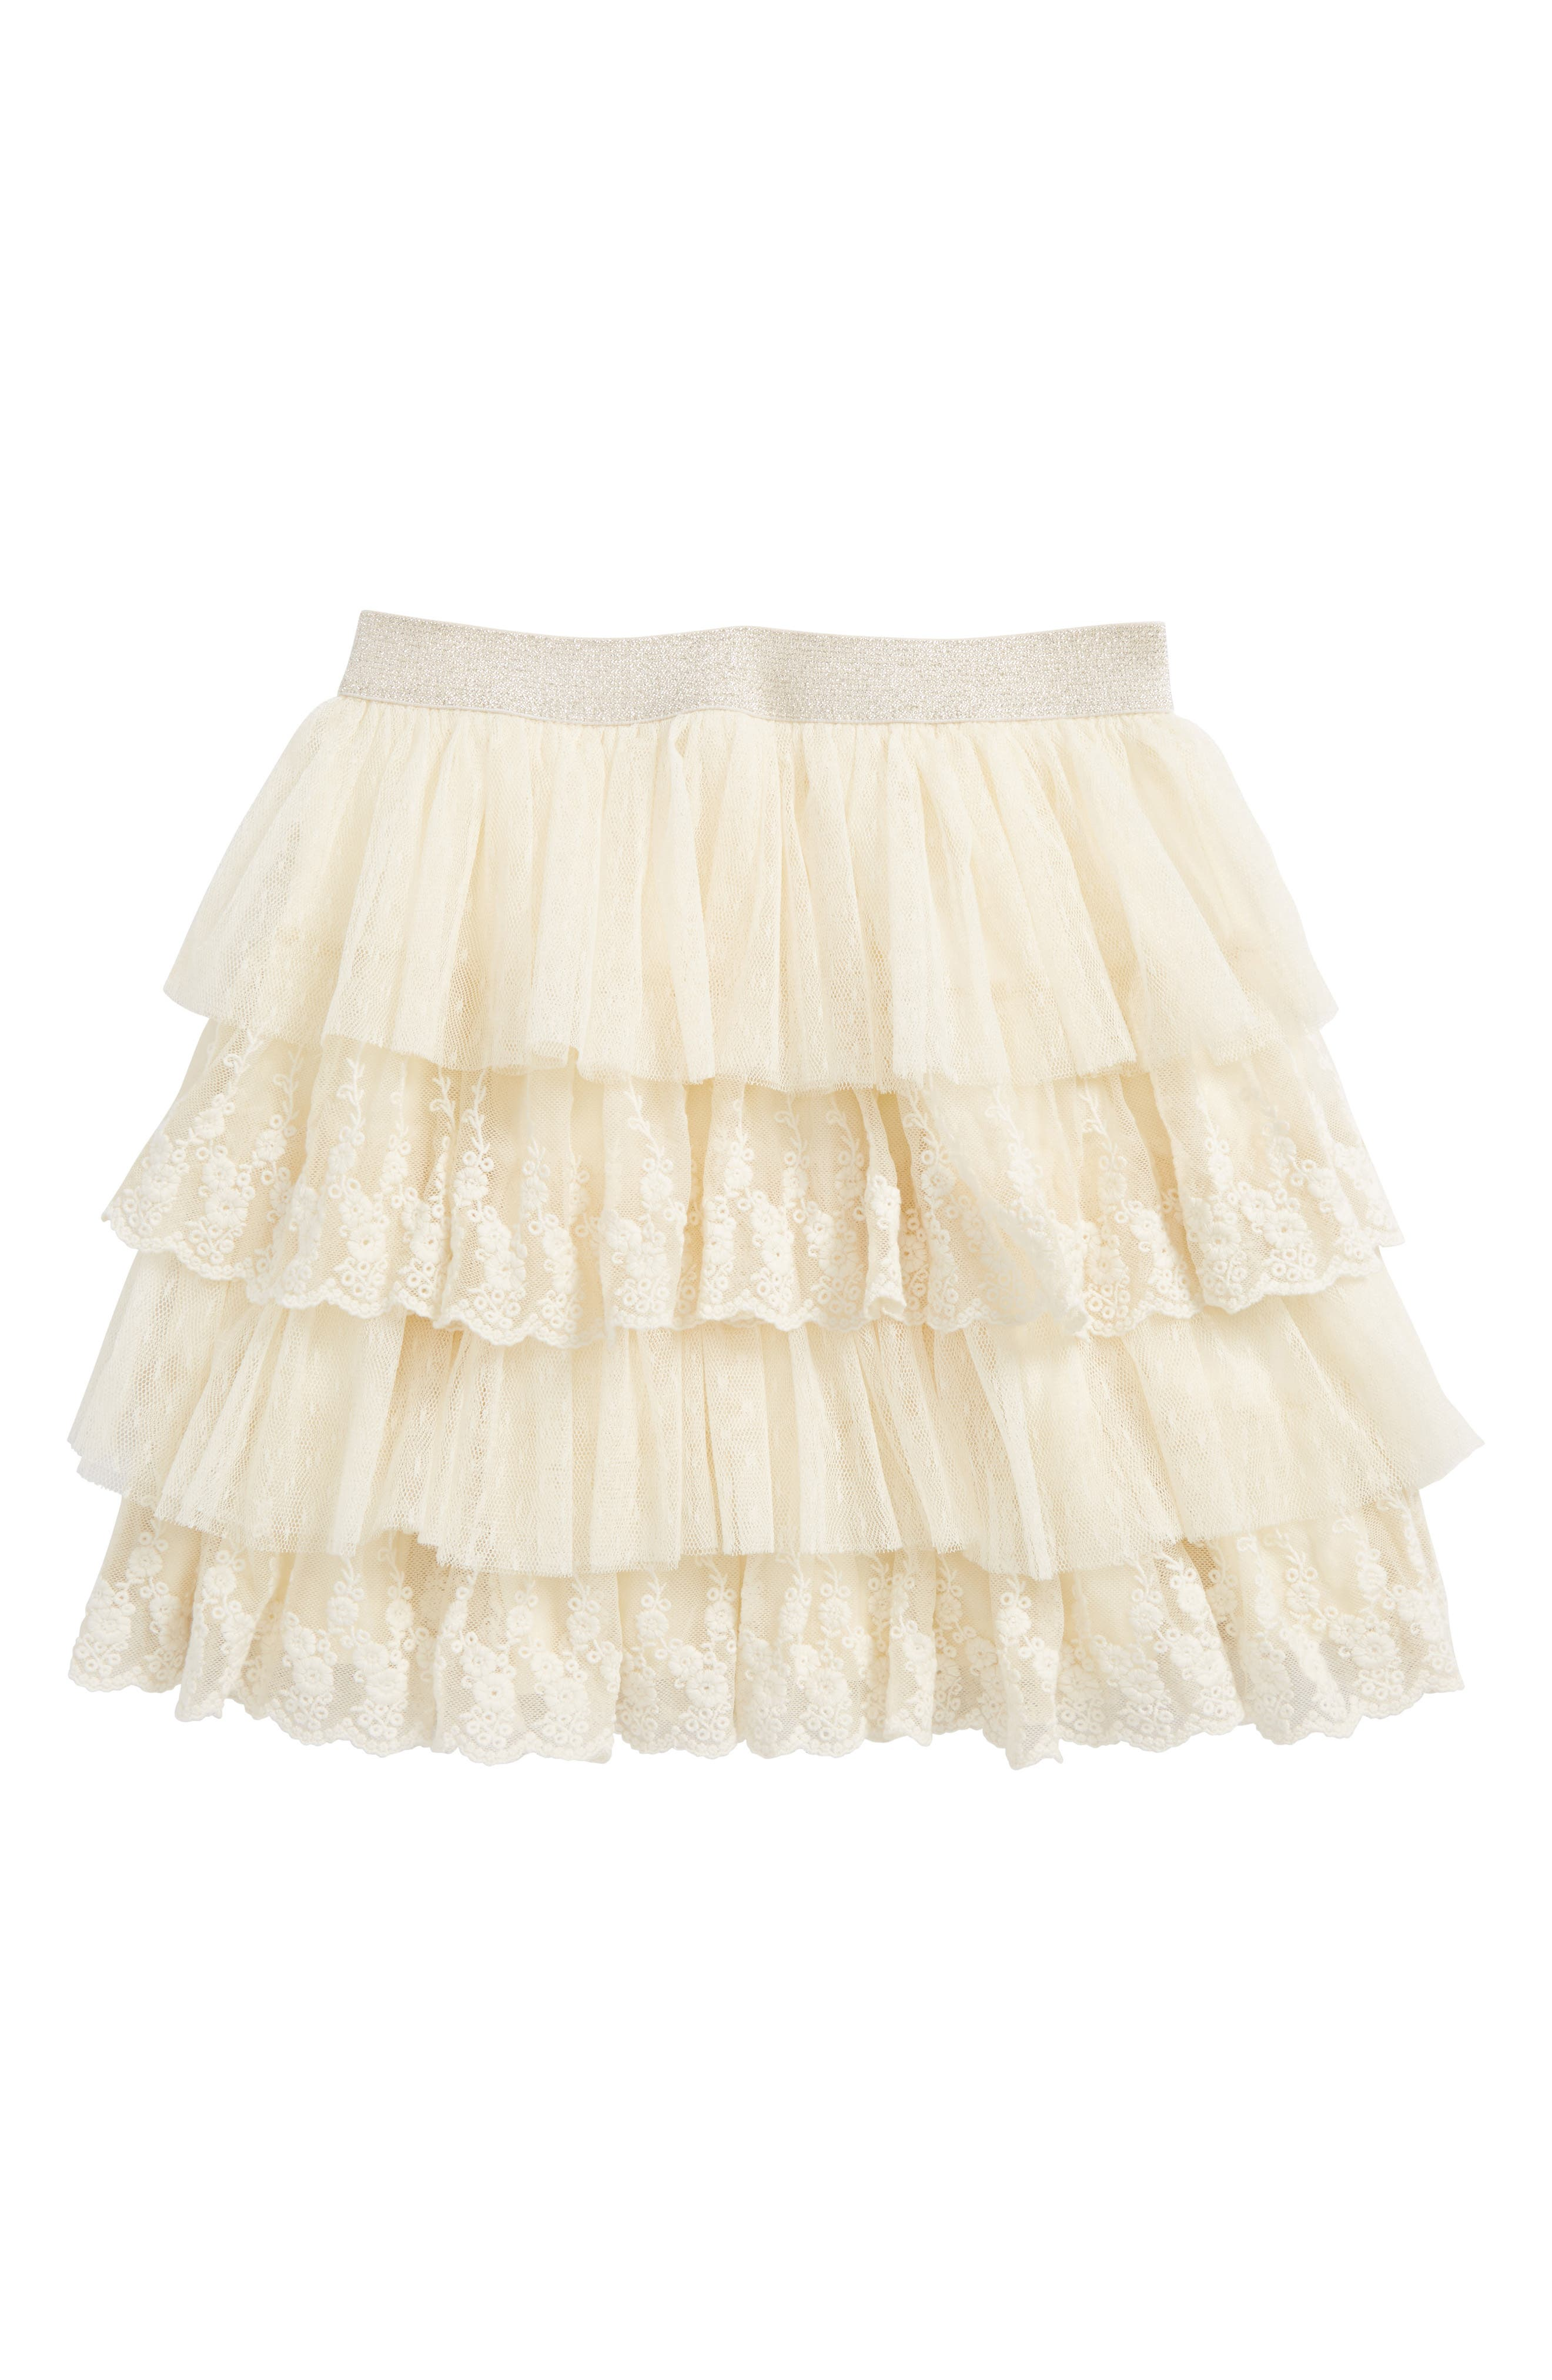 Lace Trim Tutu,                         Main,                         color, Ivory